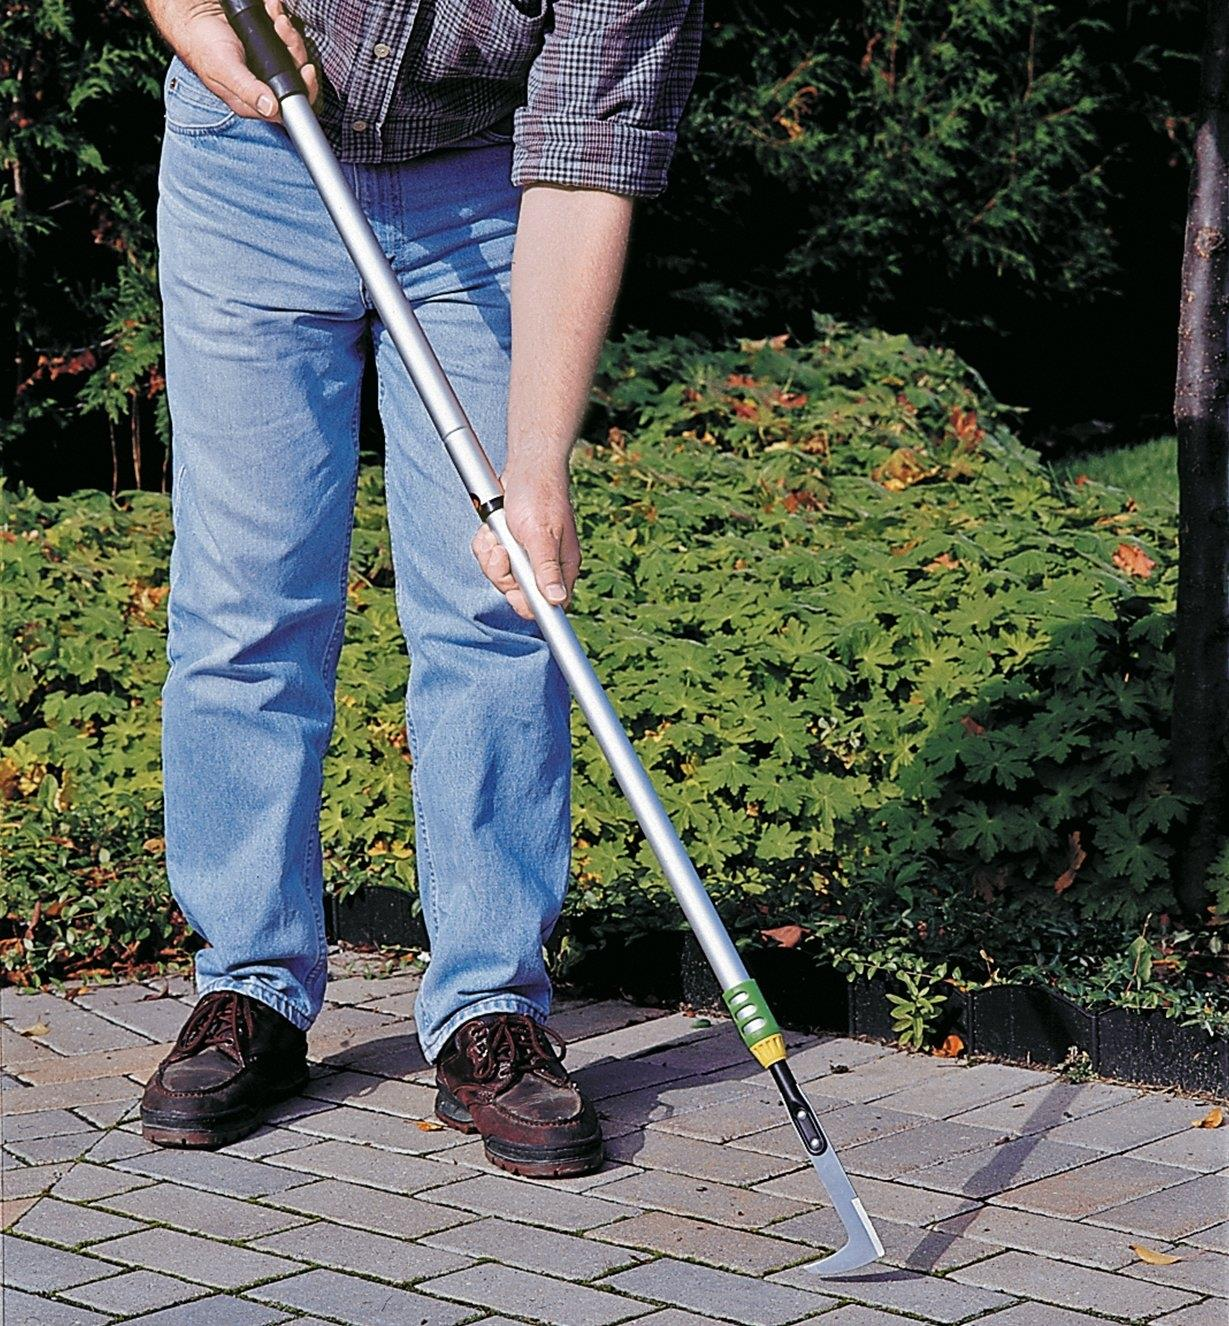 A man using the Telescoping Crack Weeder to remove weeds from between patio stones